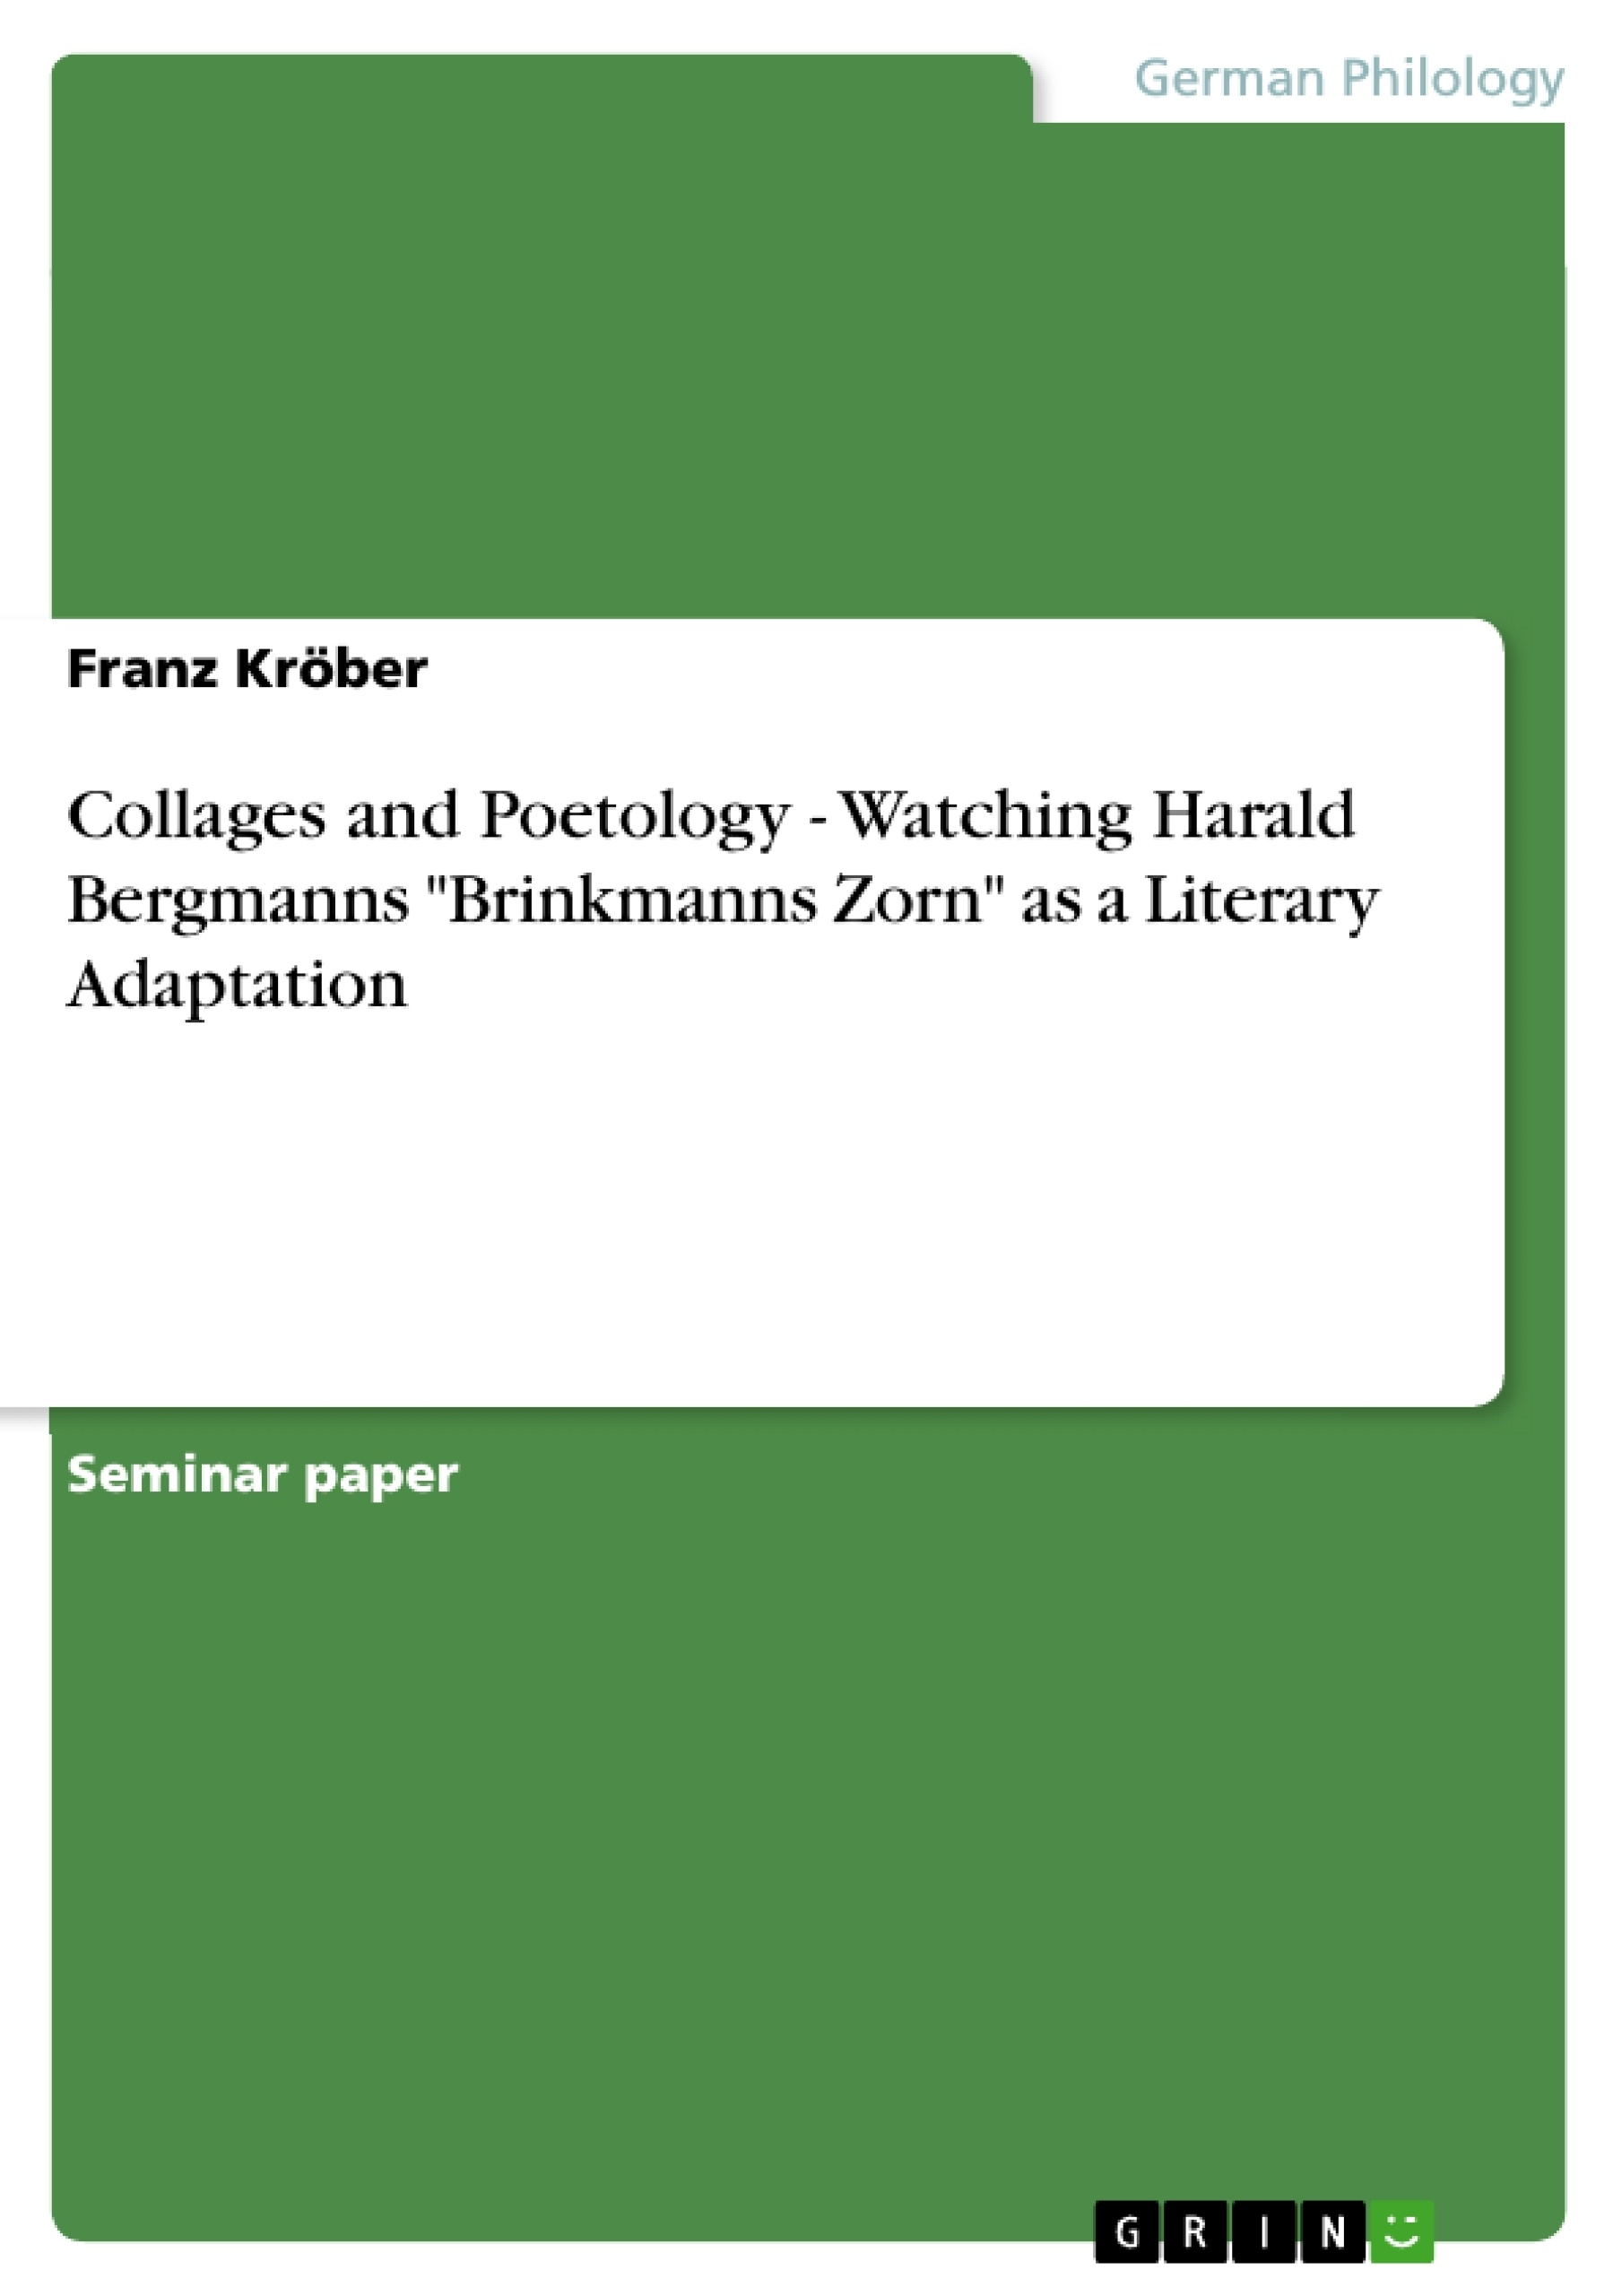 """Title: Collages and Poetology - Watching Harald Bergmanns """"Brinkmanns Zorn"""" as a Literary Adaptation"""